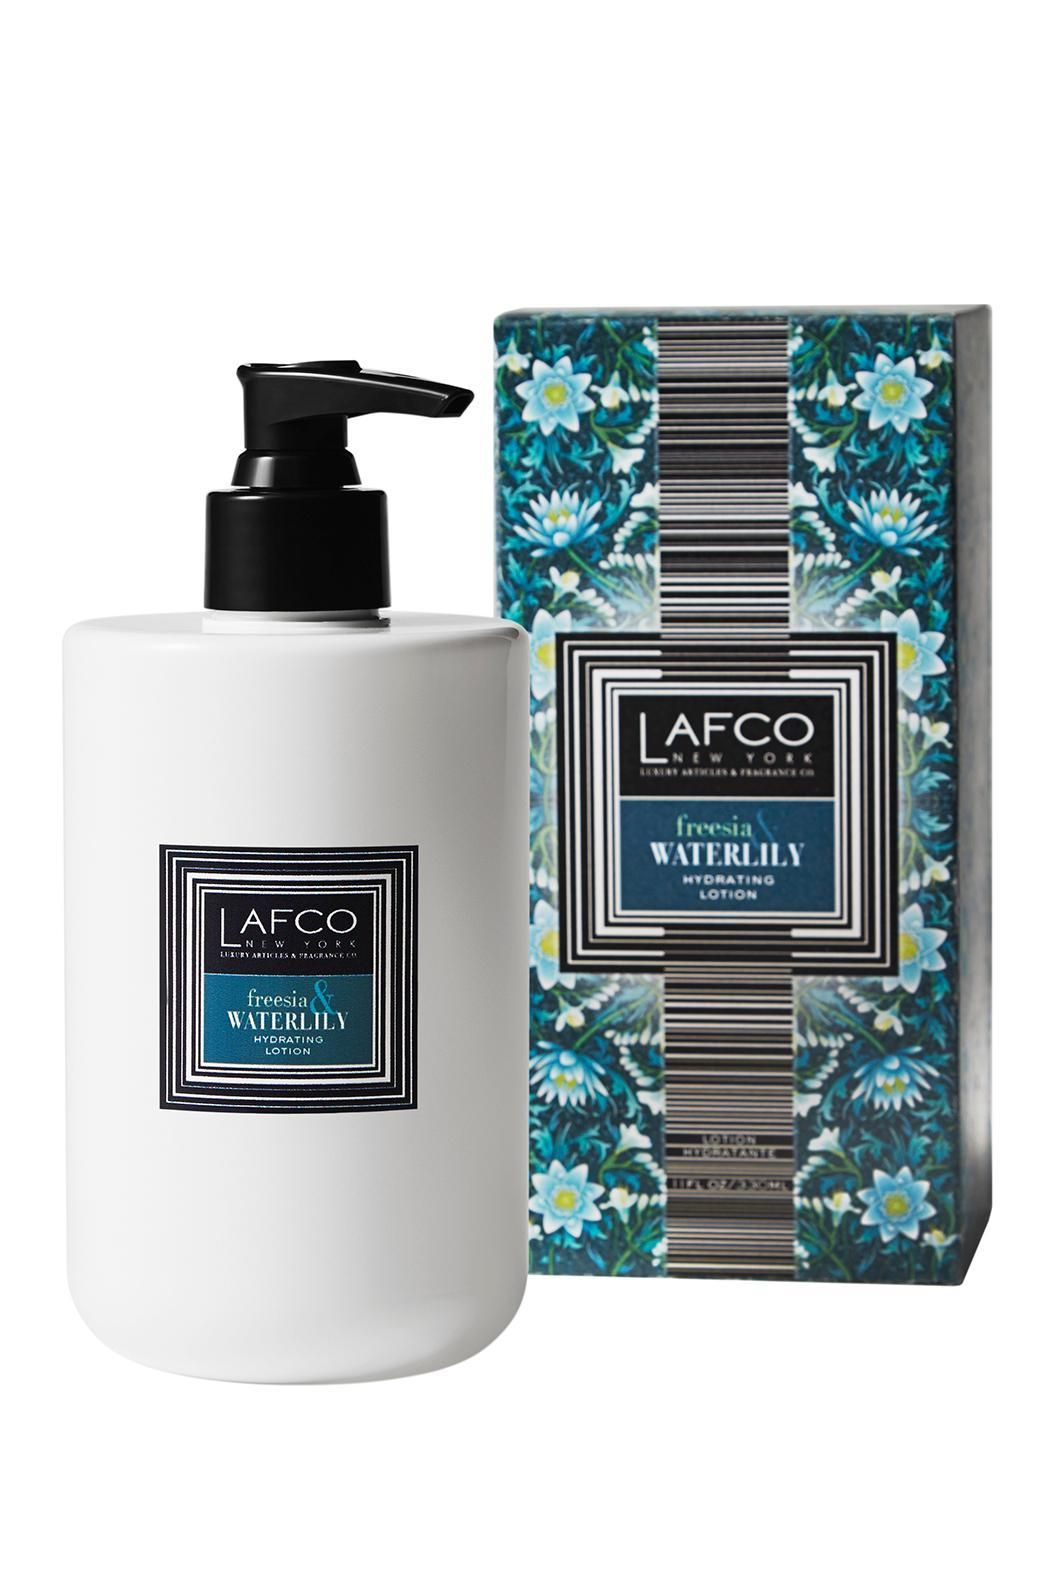 Lafco Freesia Waterlily Body Lotion Lotion, Body lotion